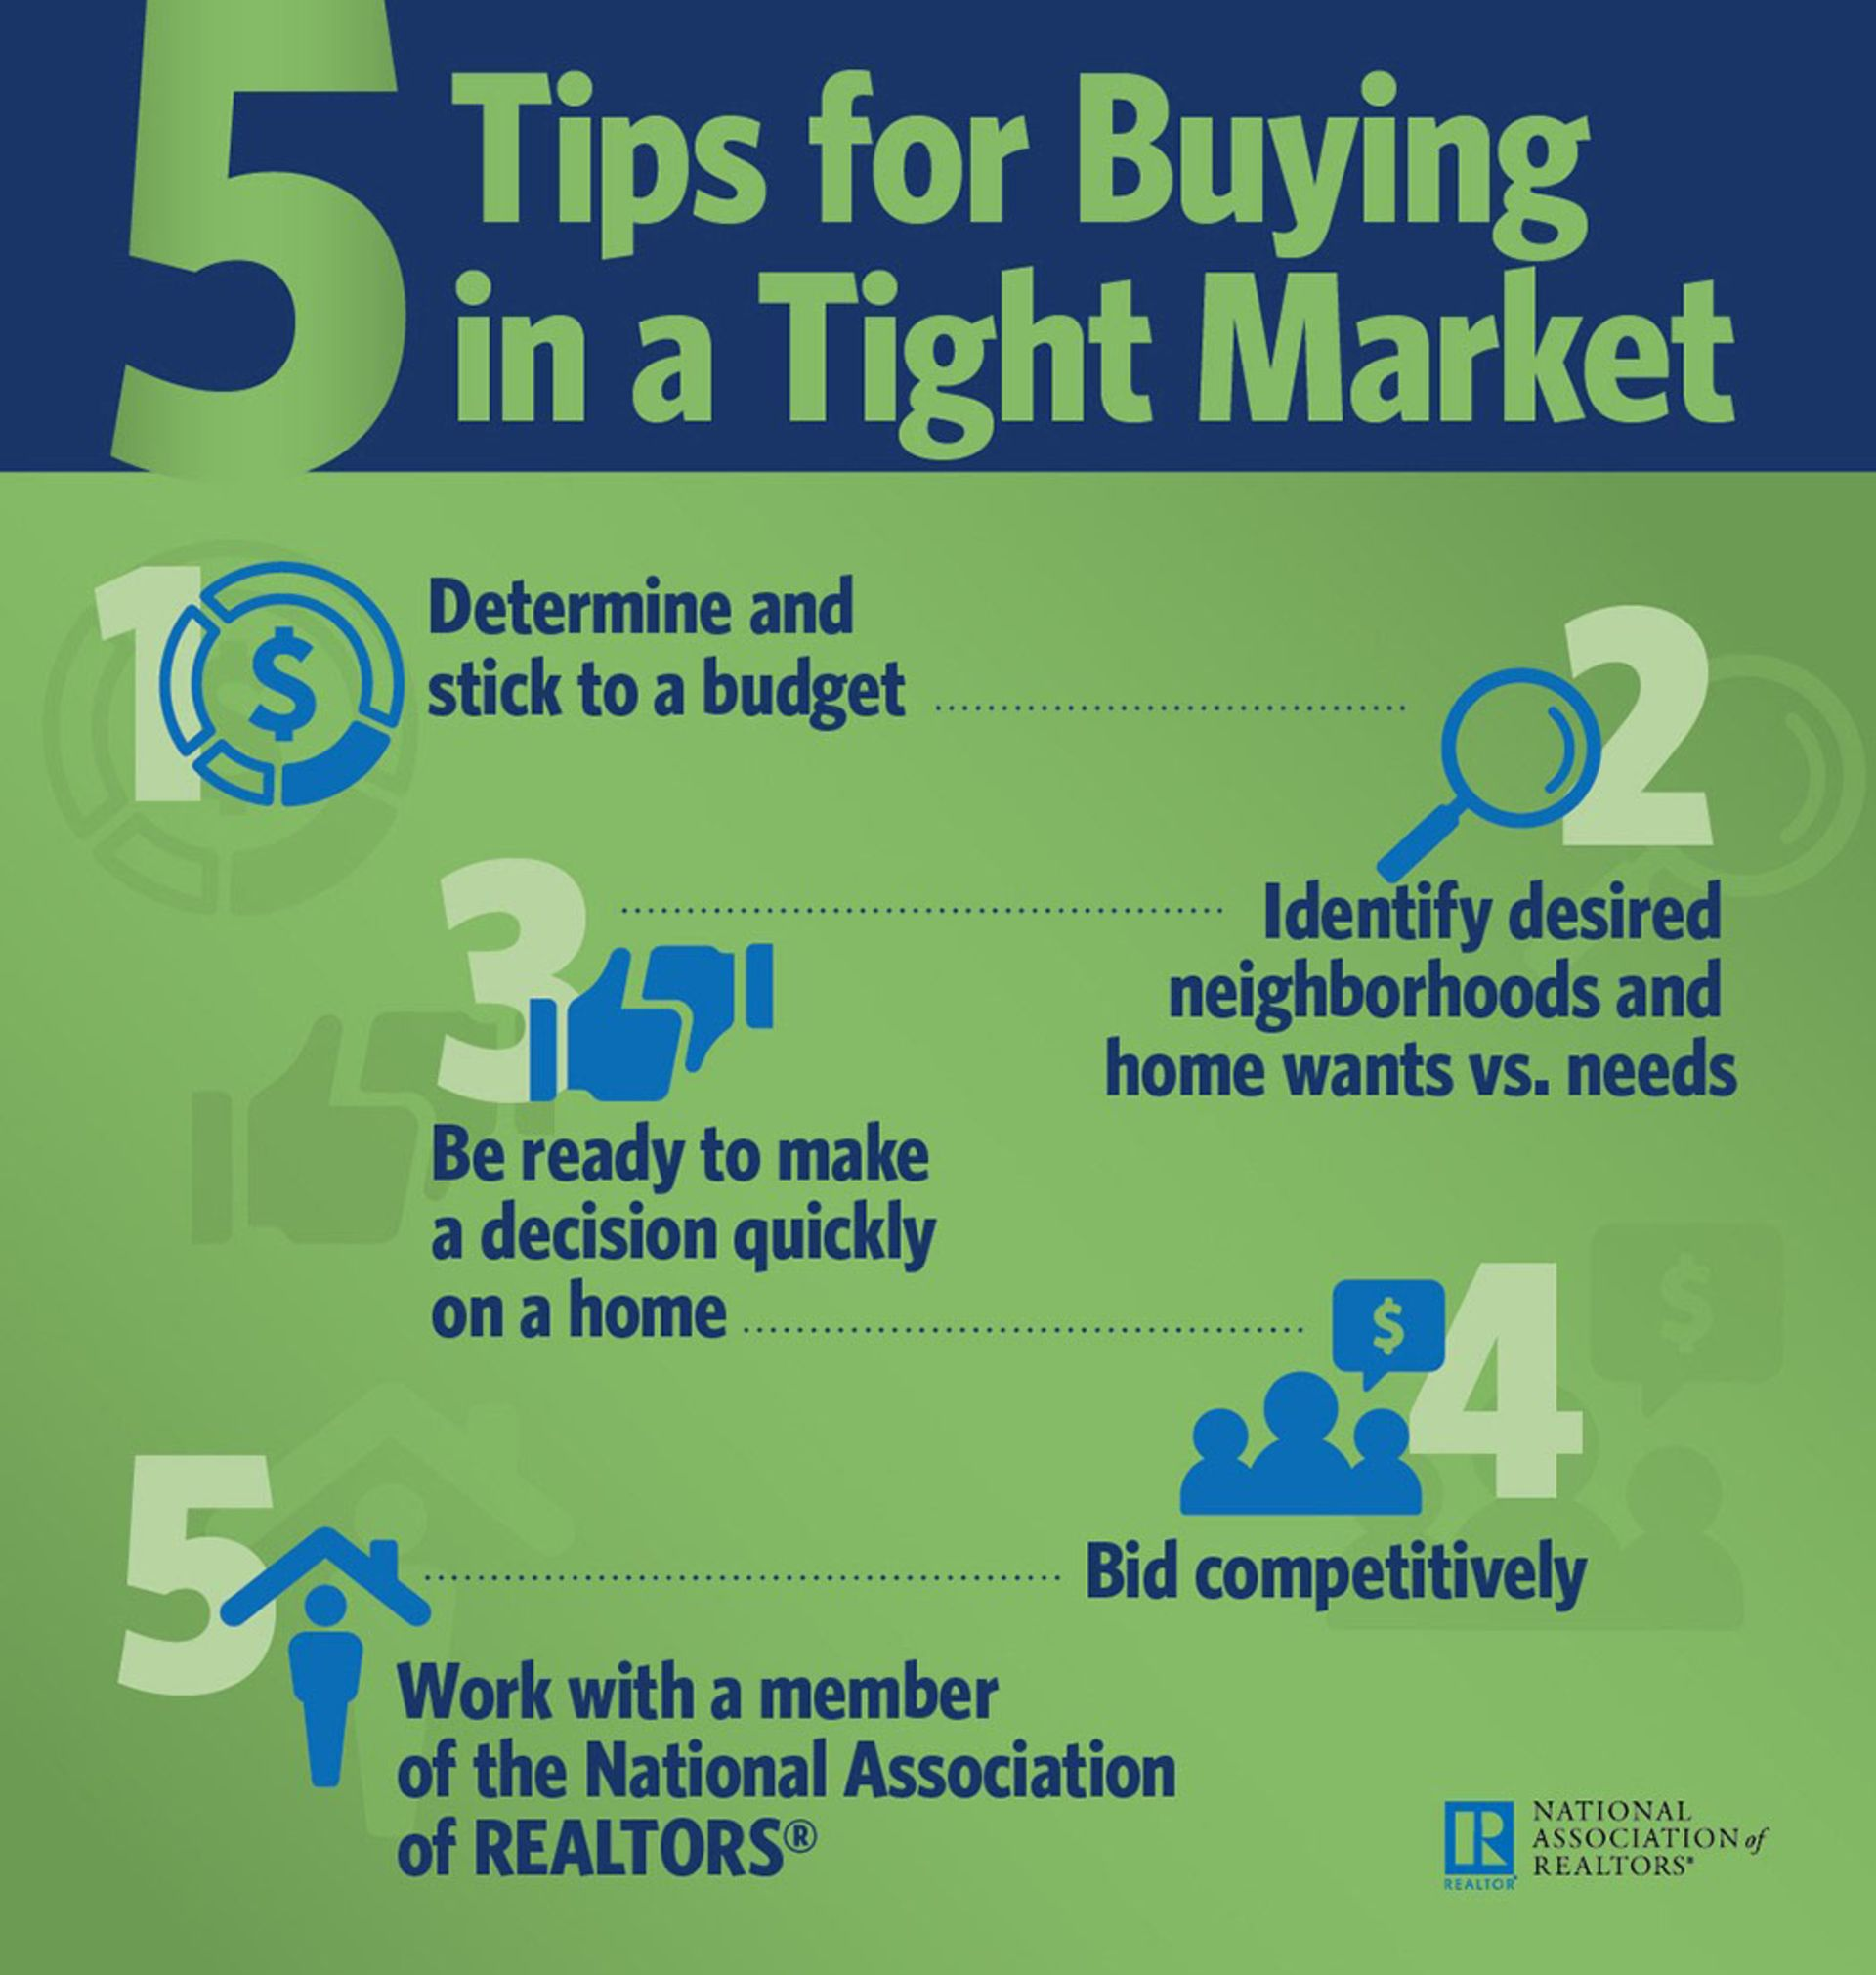 5 Tips for Buyers in a Tight Market